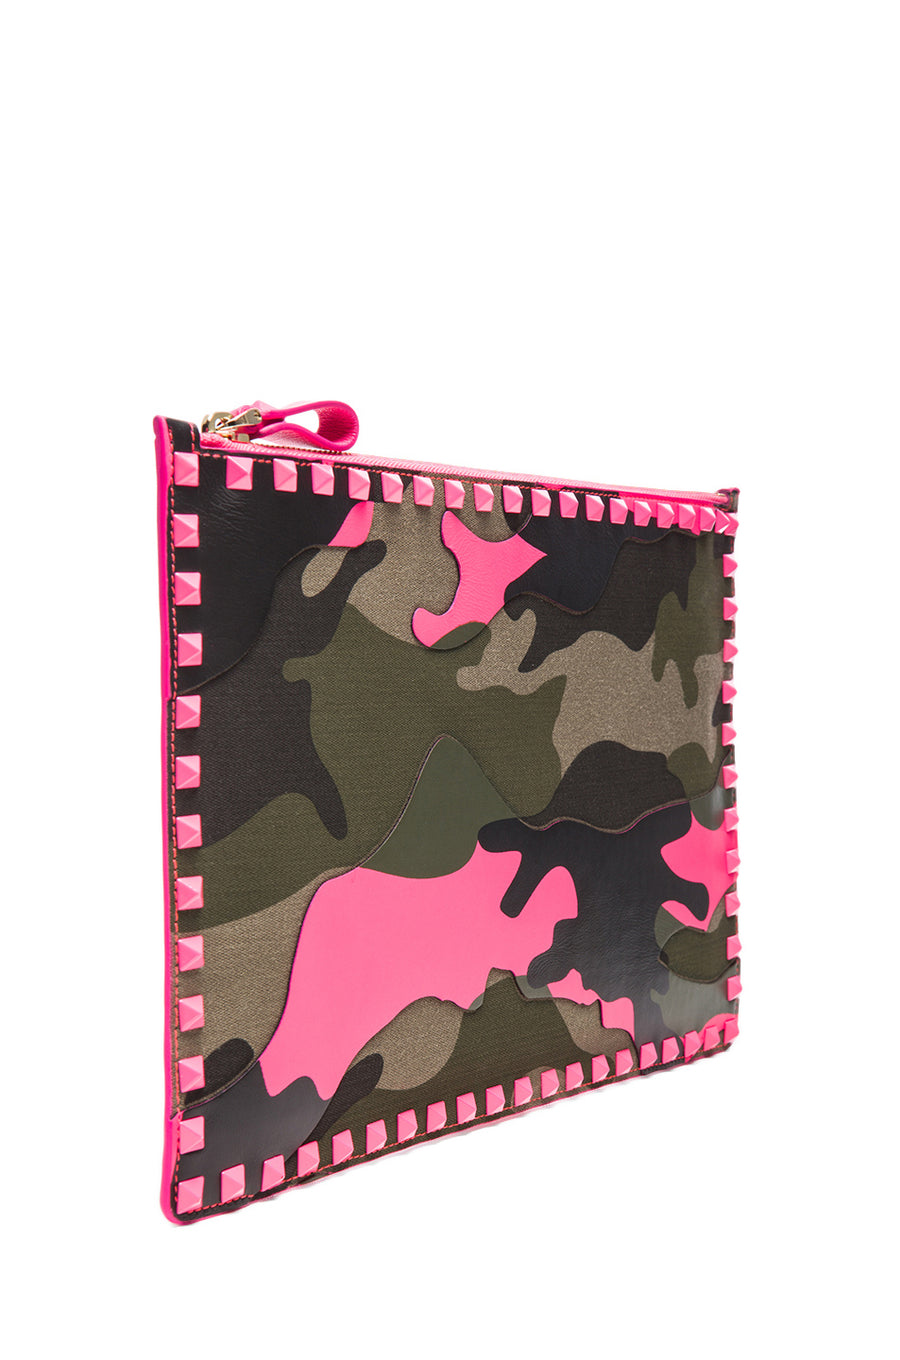 Valentino Camouflage Pink Clutch - Luxury Next Season